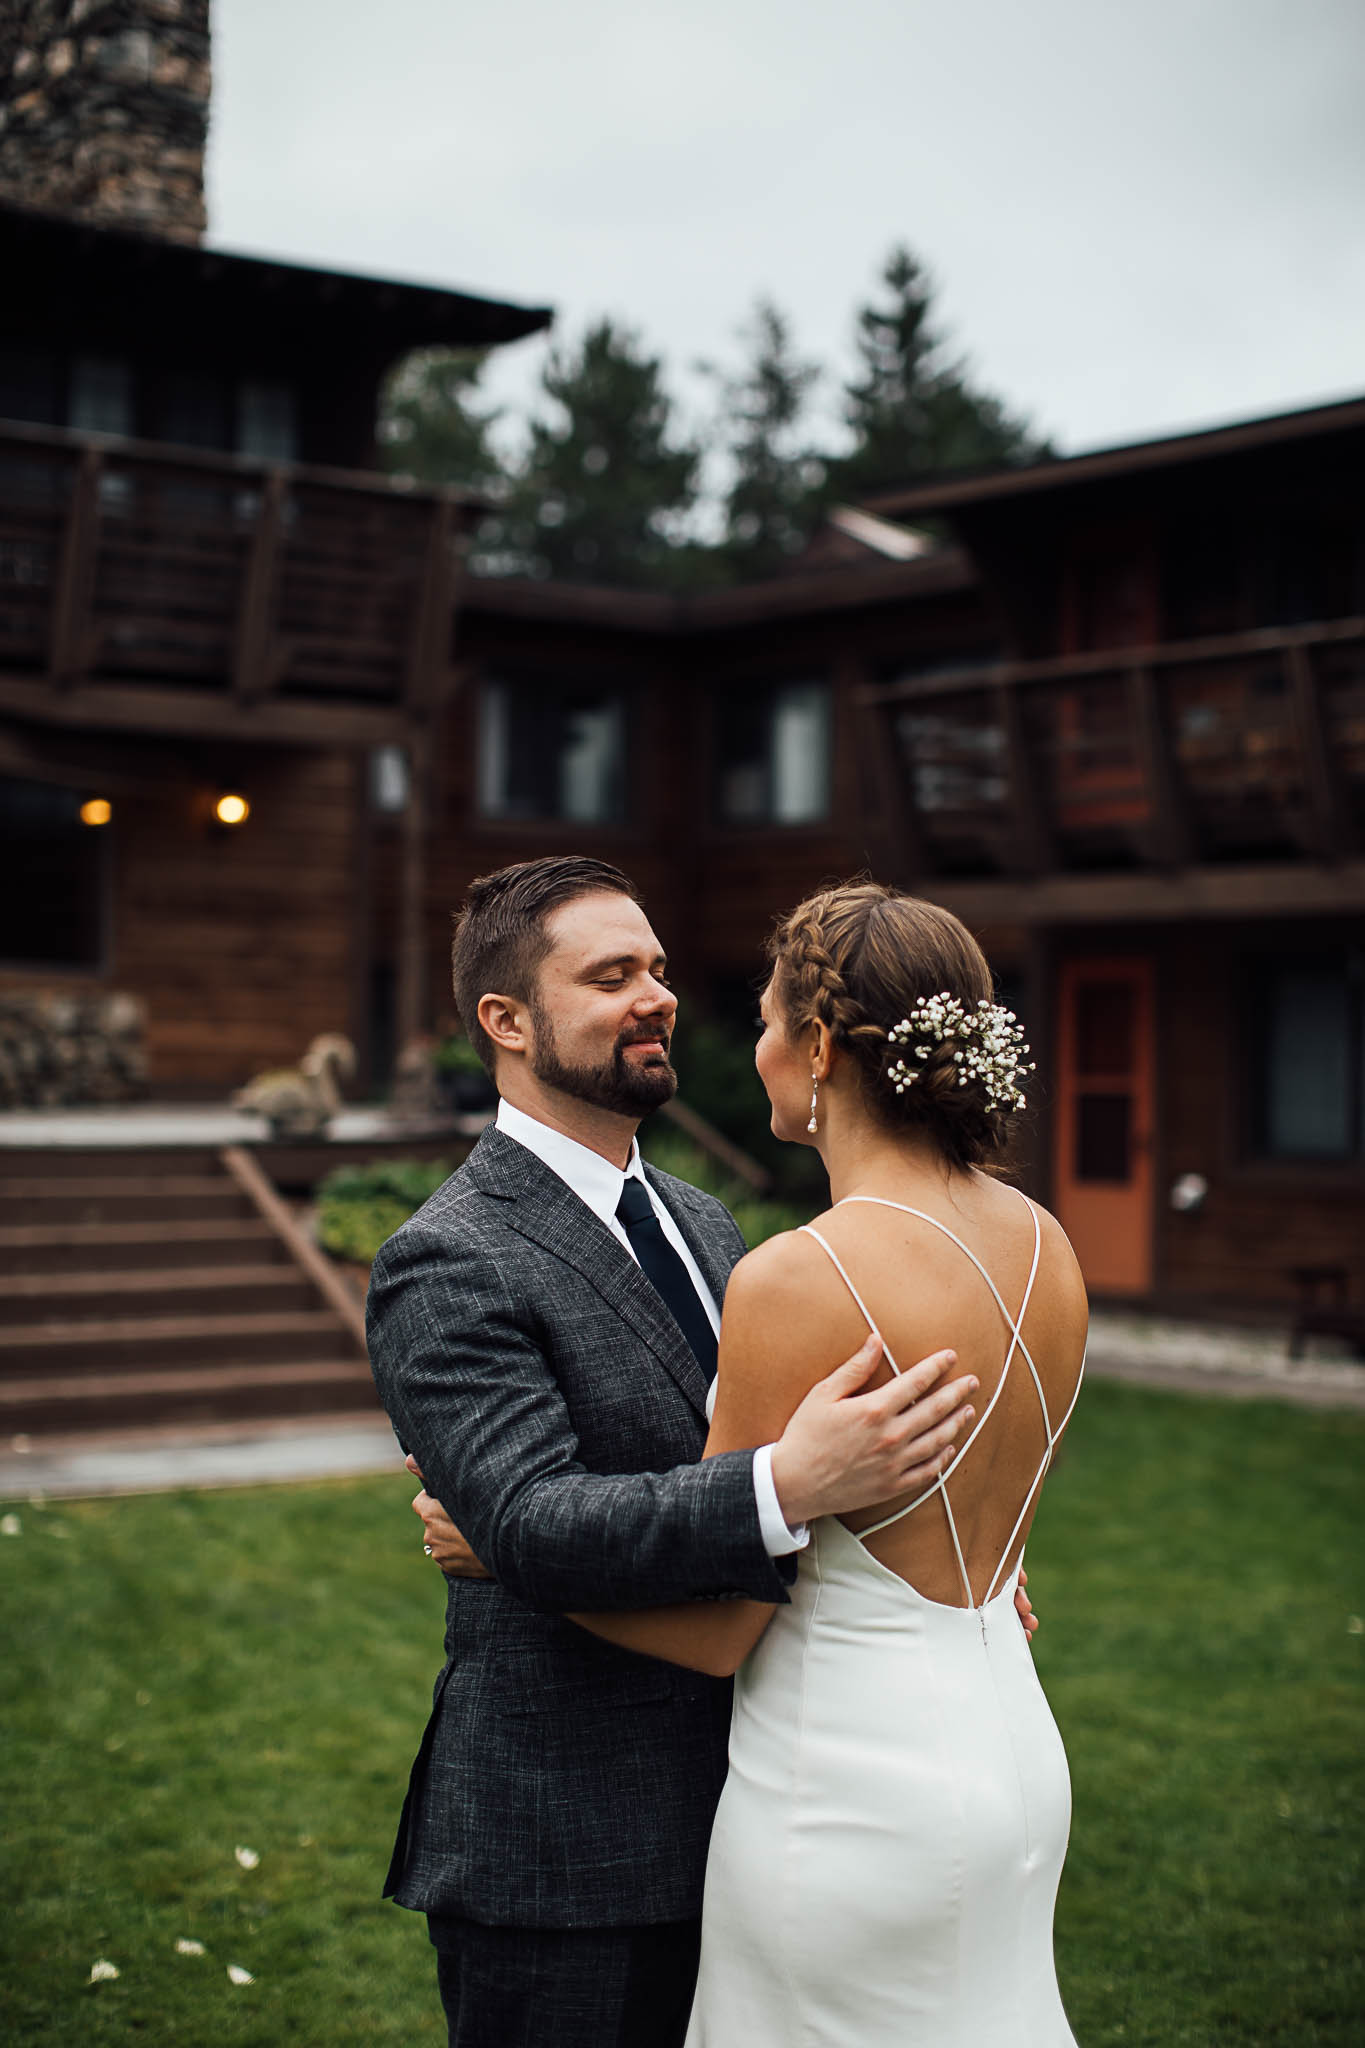 Killington-Vermont-Mountain-Lodge-Carissa-and-Matt-153.jpg